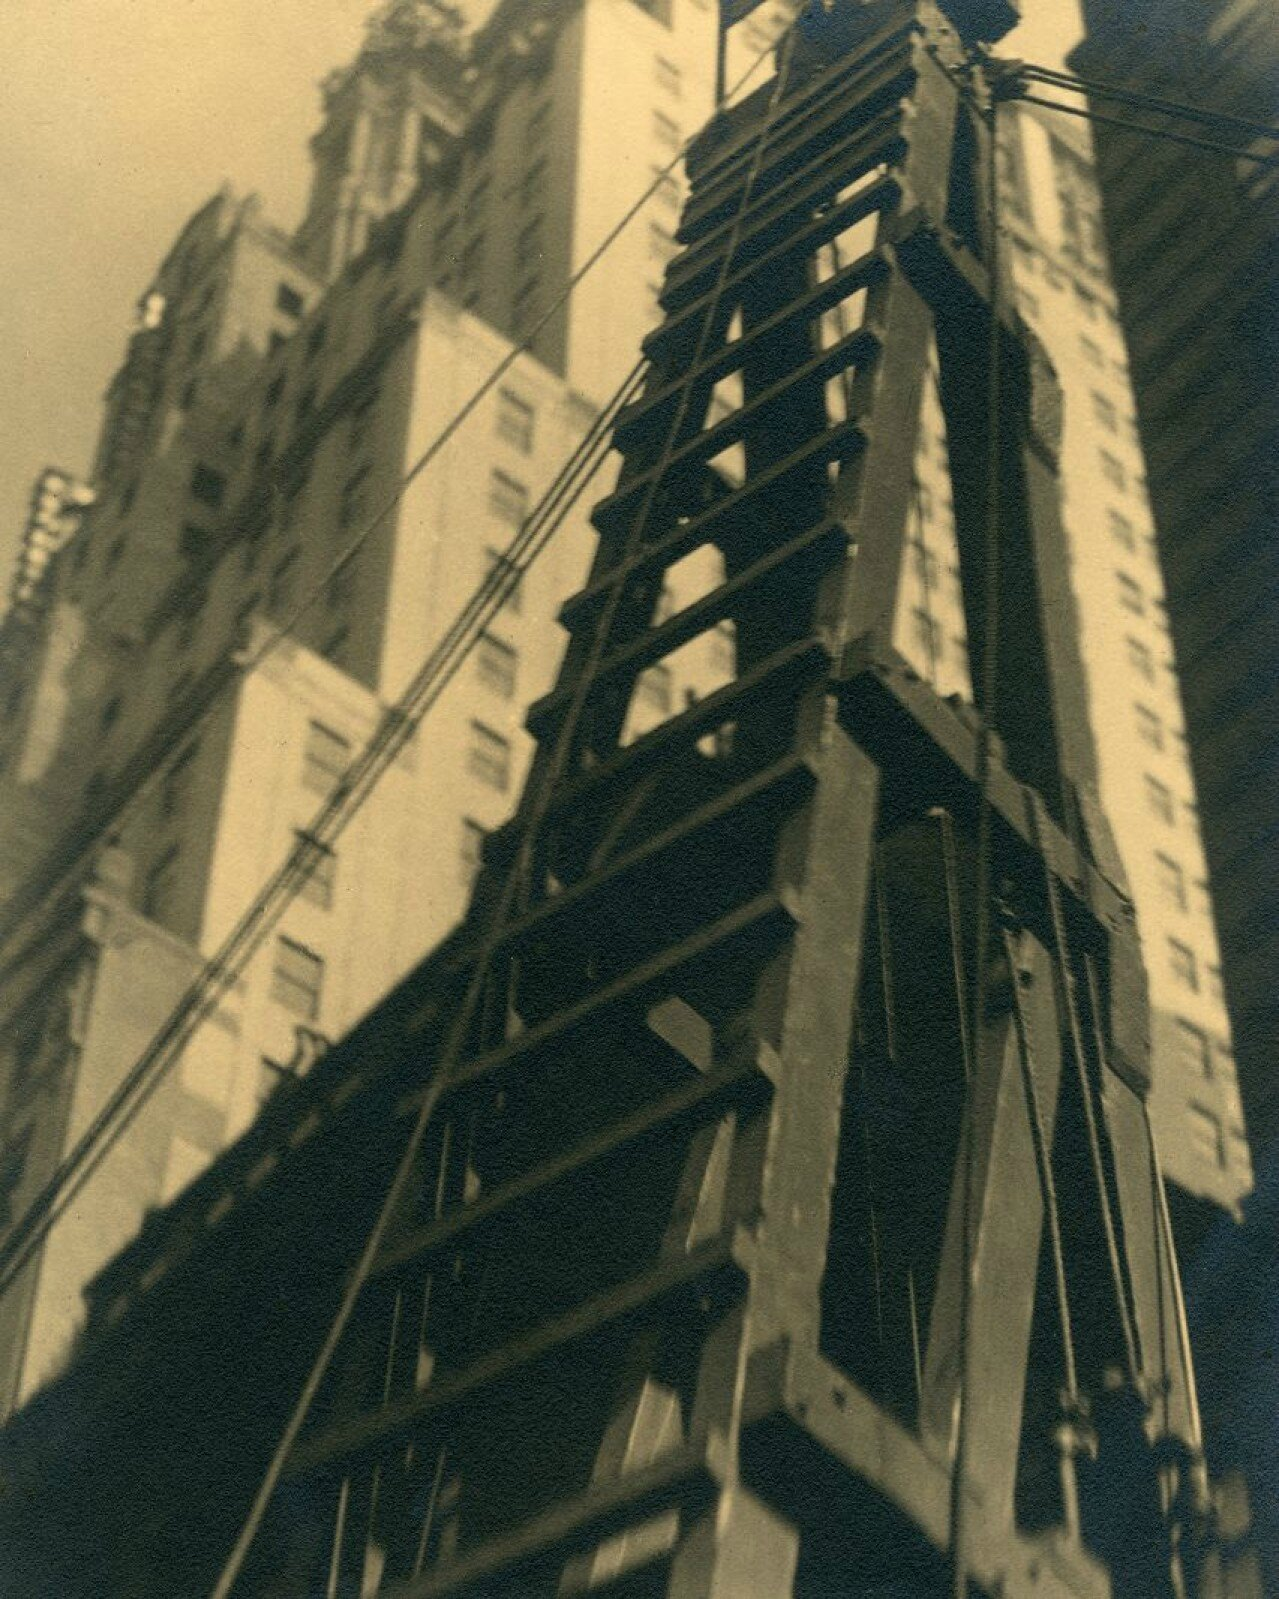 Pierre Berger Vinci Construction Sherill Schell New York 1930s It 39s A Digital Moment